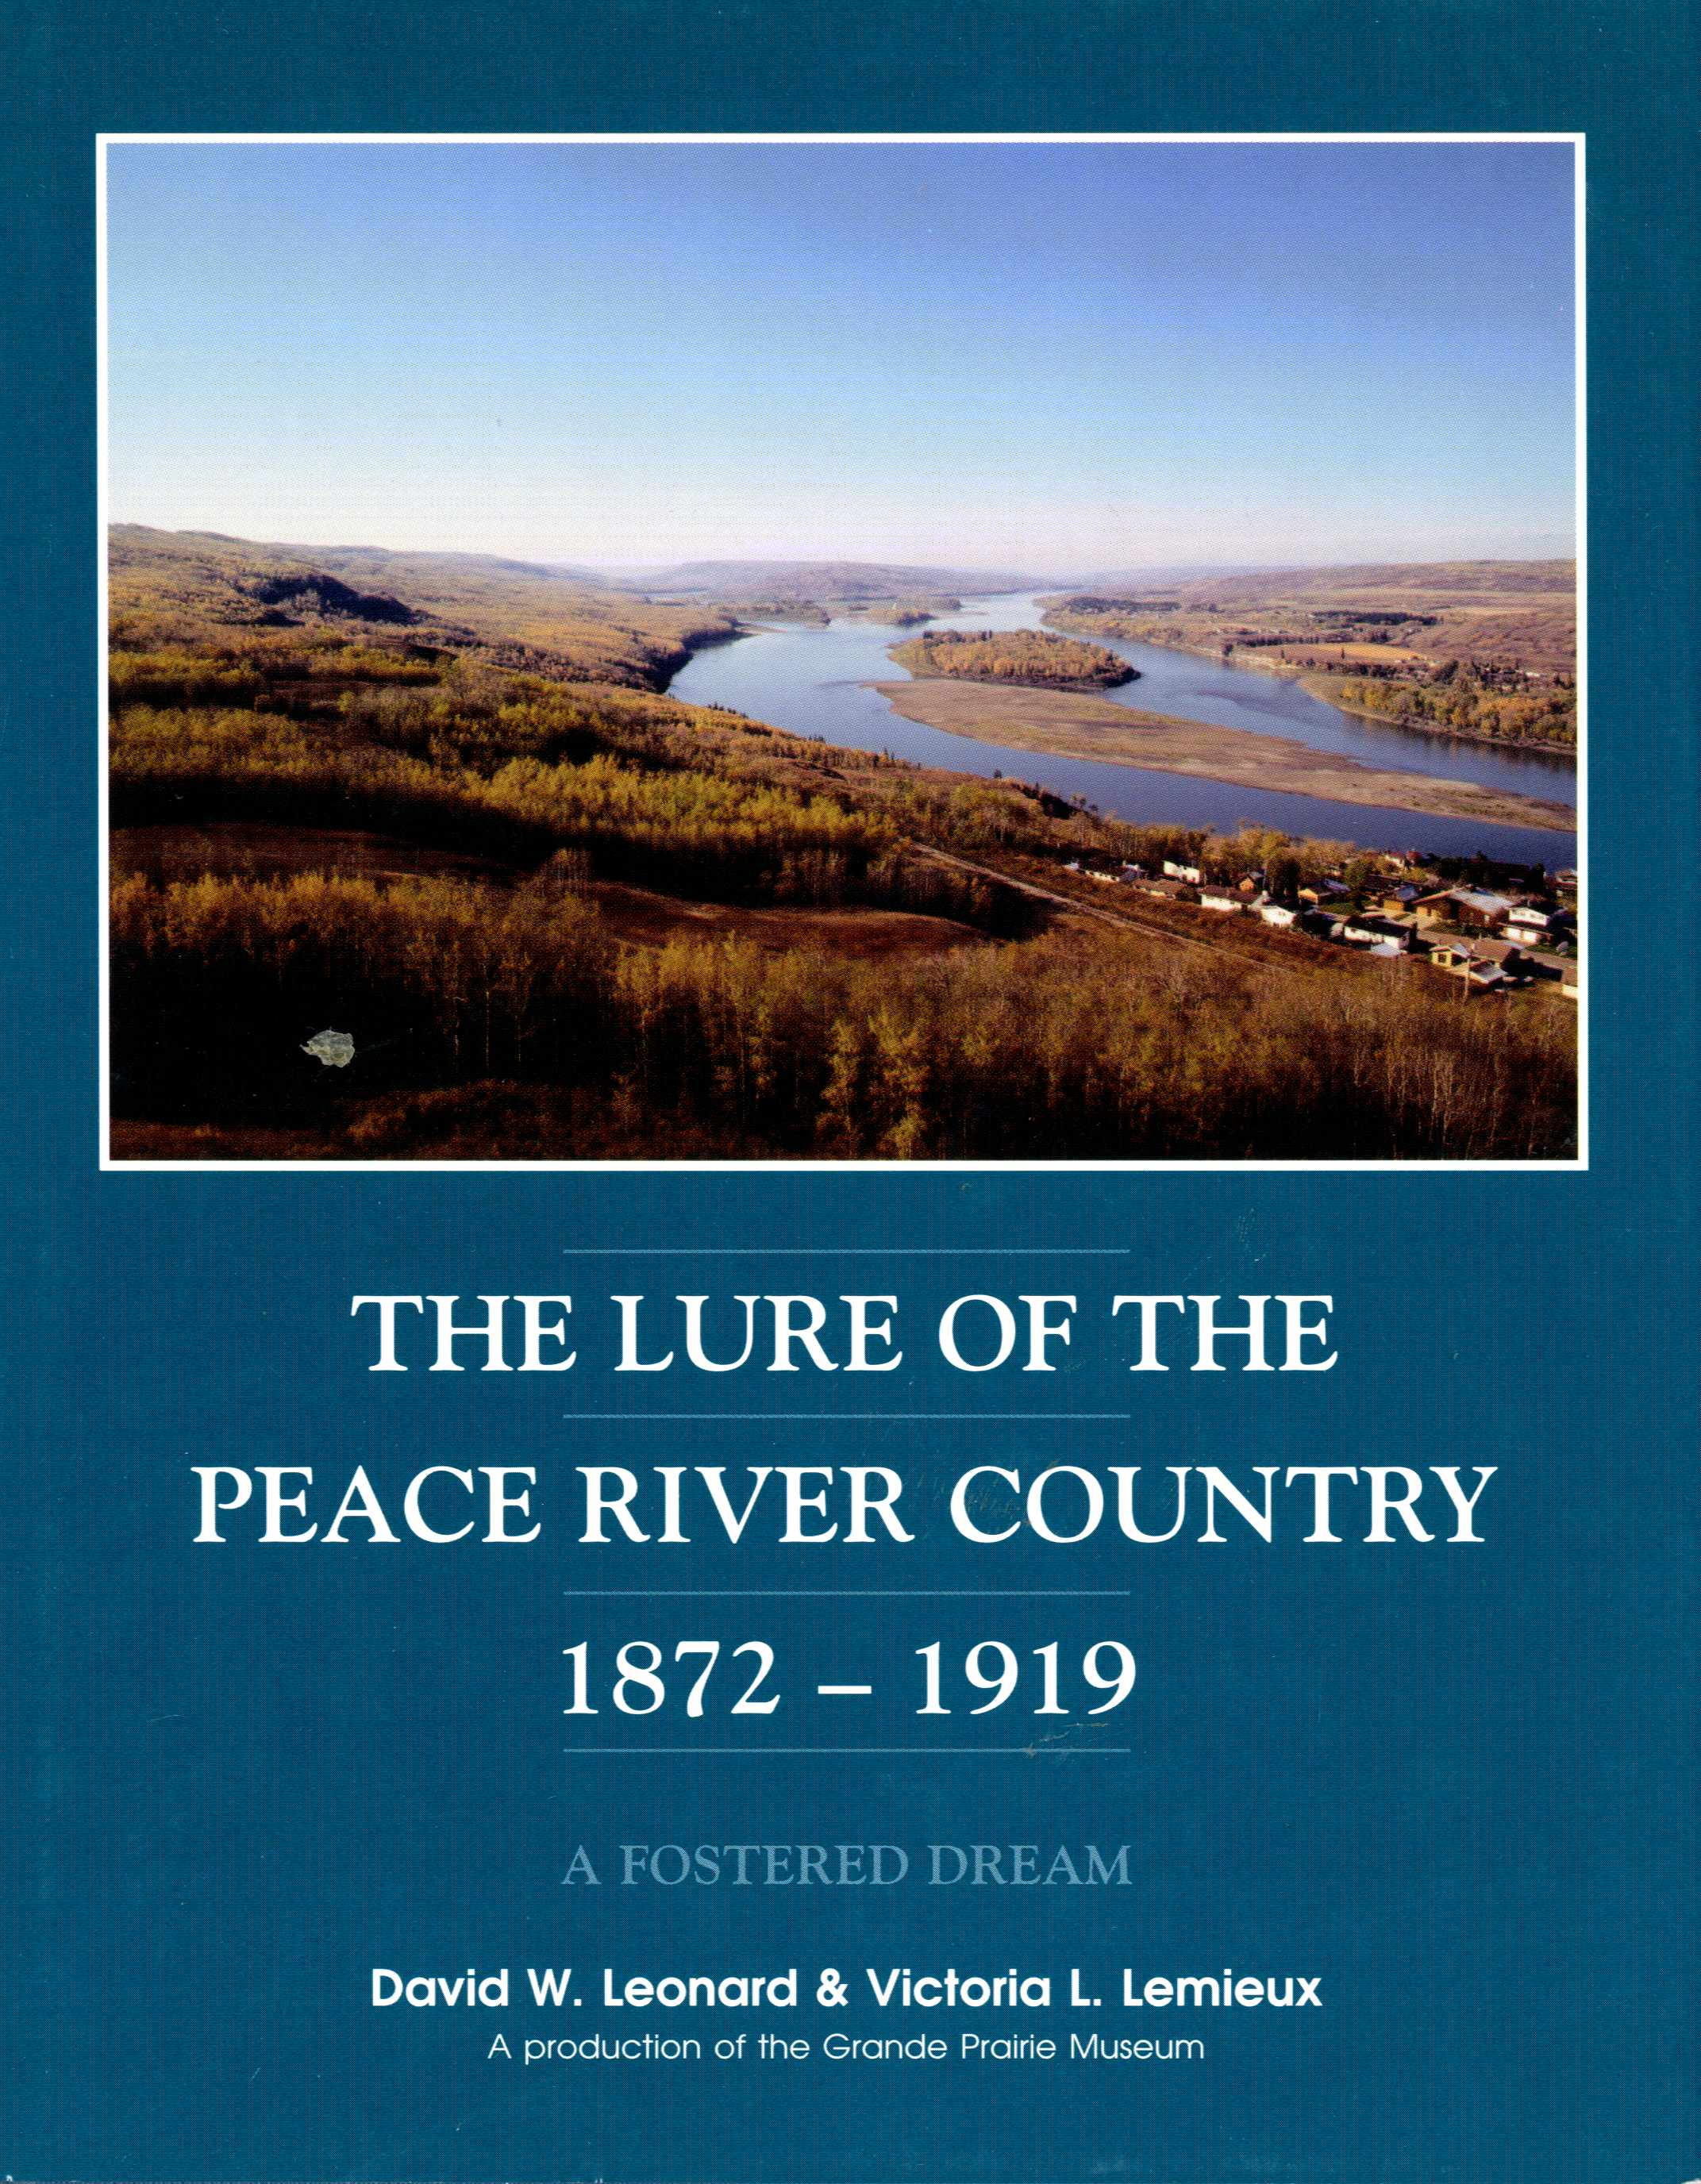 The Lure of the Peace RIver Country 1872-1919 Image